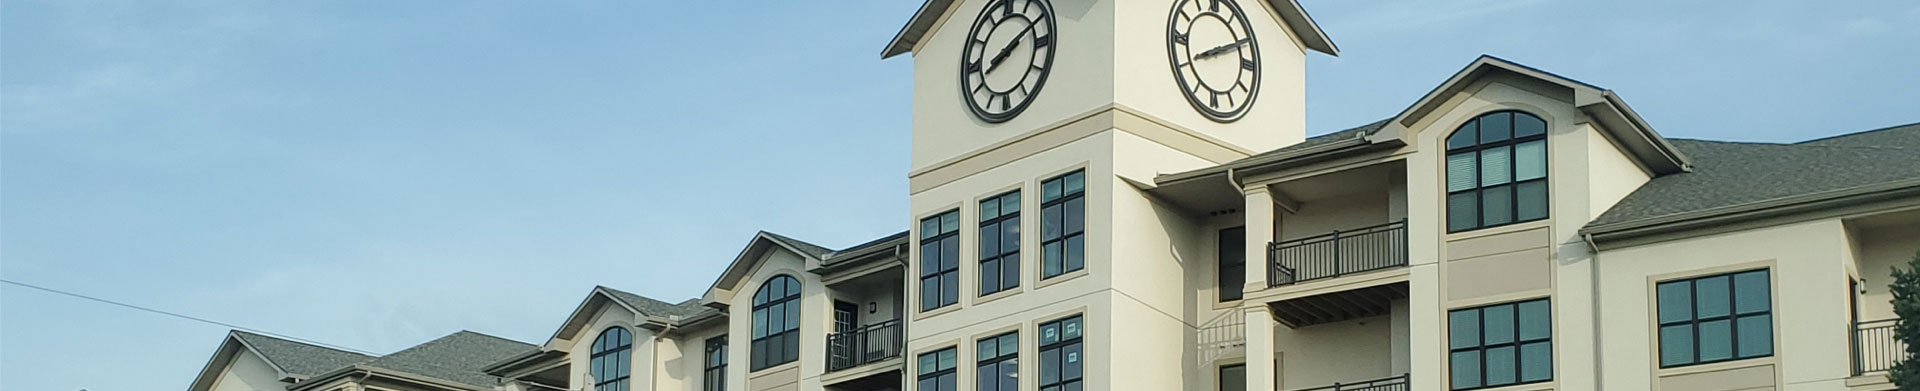 The tower clock in the apartment building